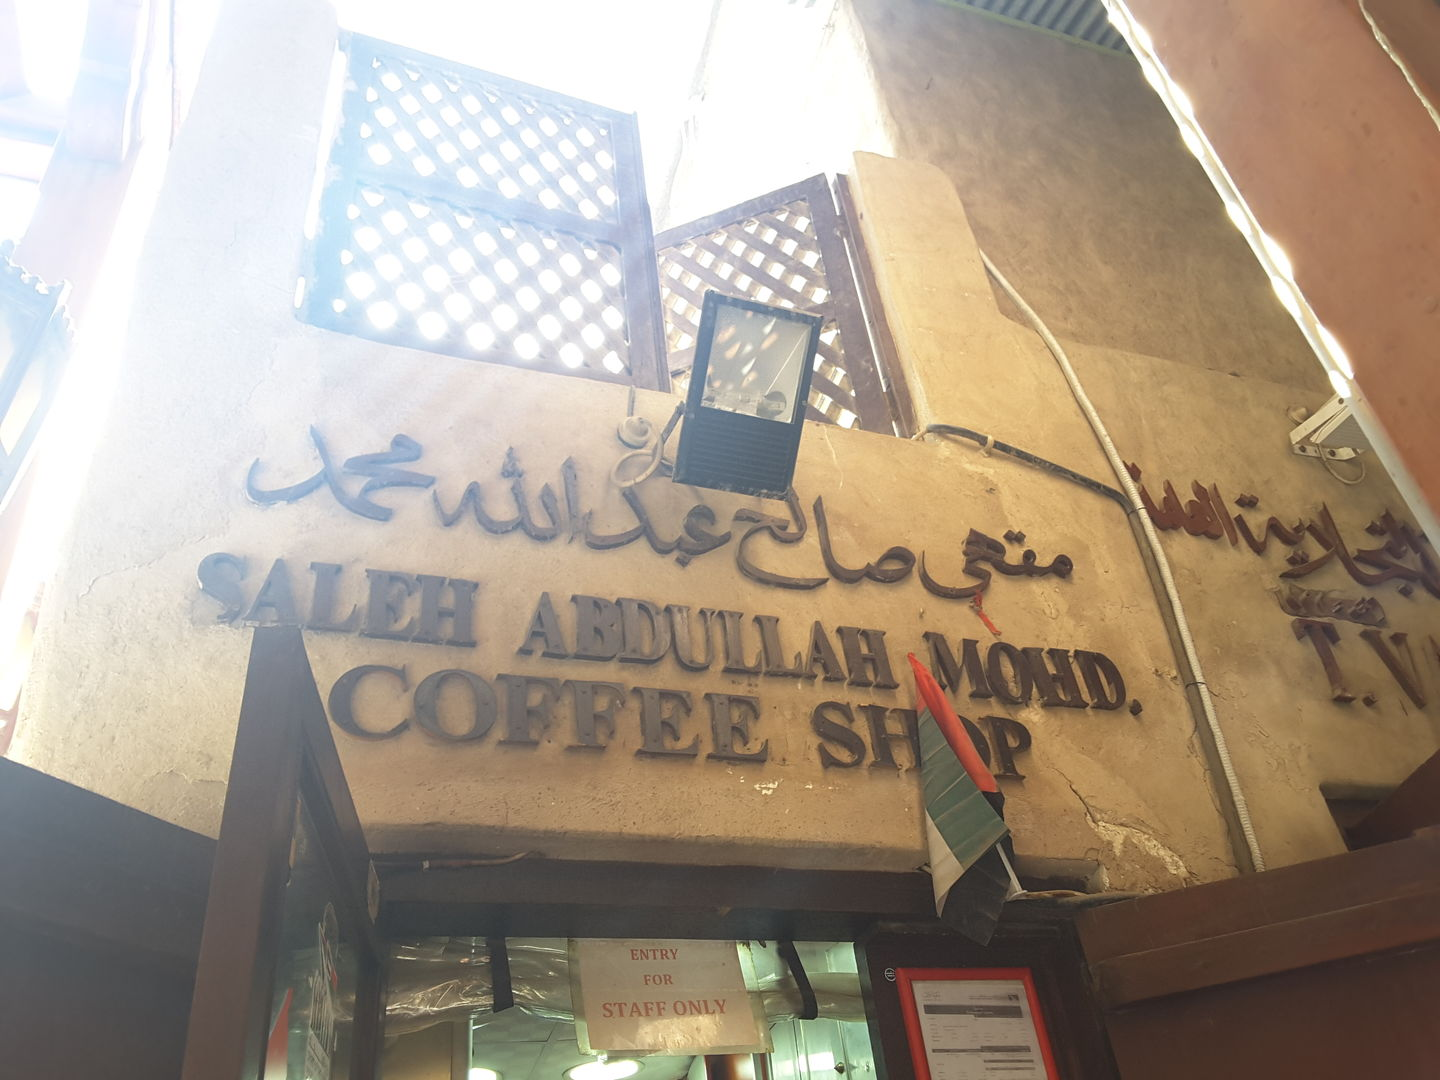 HiDubai-business-saleh-abdulla-mohd-coffee-shop-food-beverage-cafeterias-al-fahidi-al-souq-al-kabeer-dubai-2